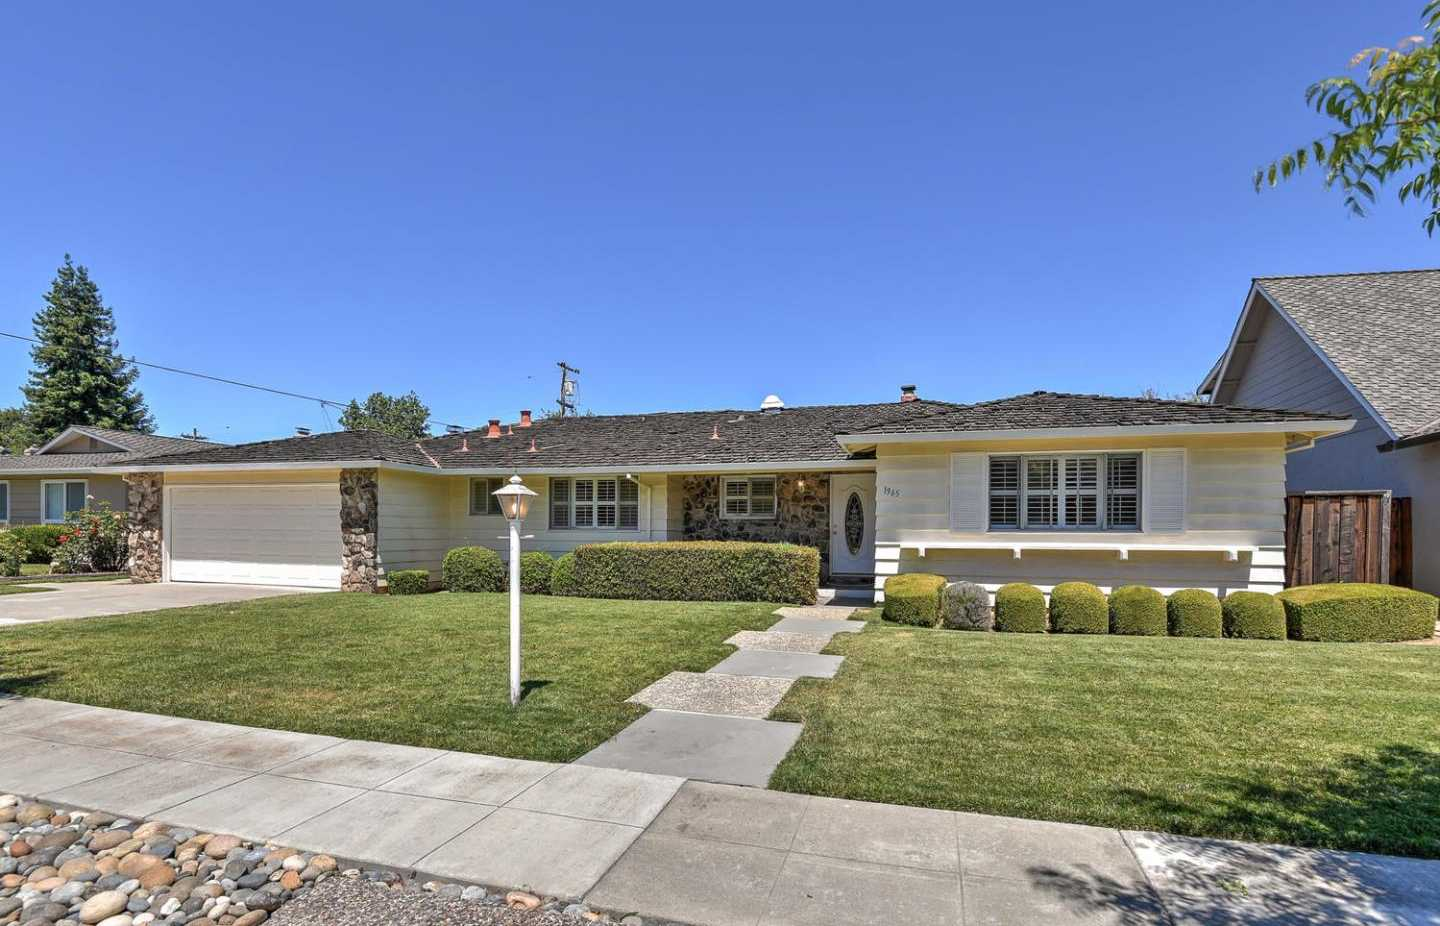 $1,450,000 - 4Br/3Ba -  for Sale in San Jose